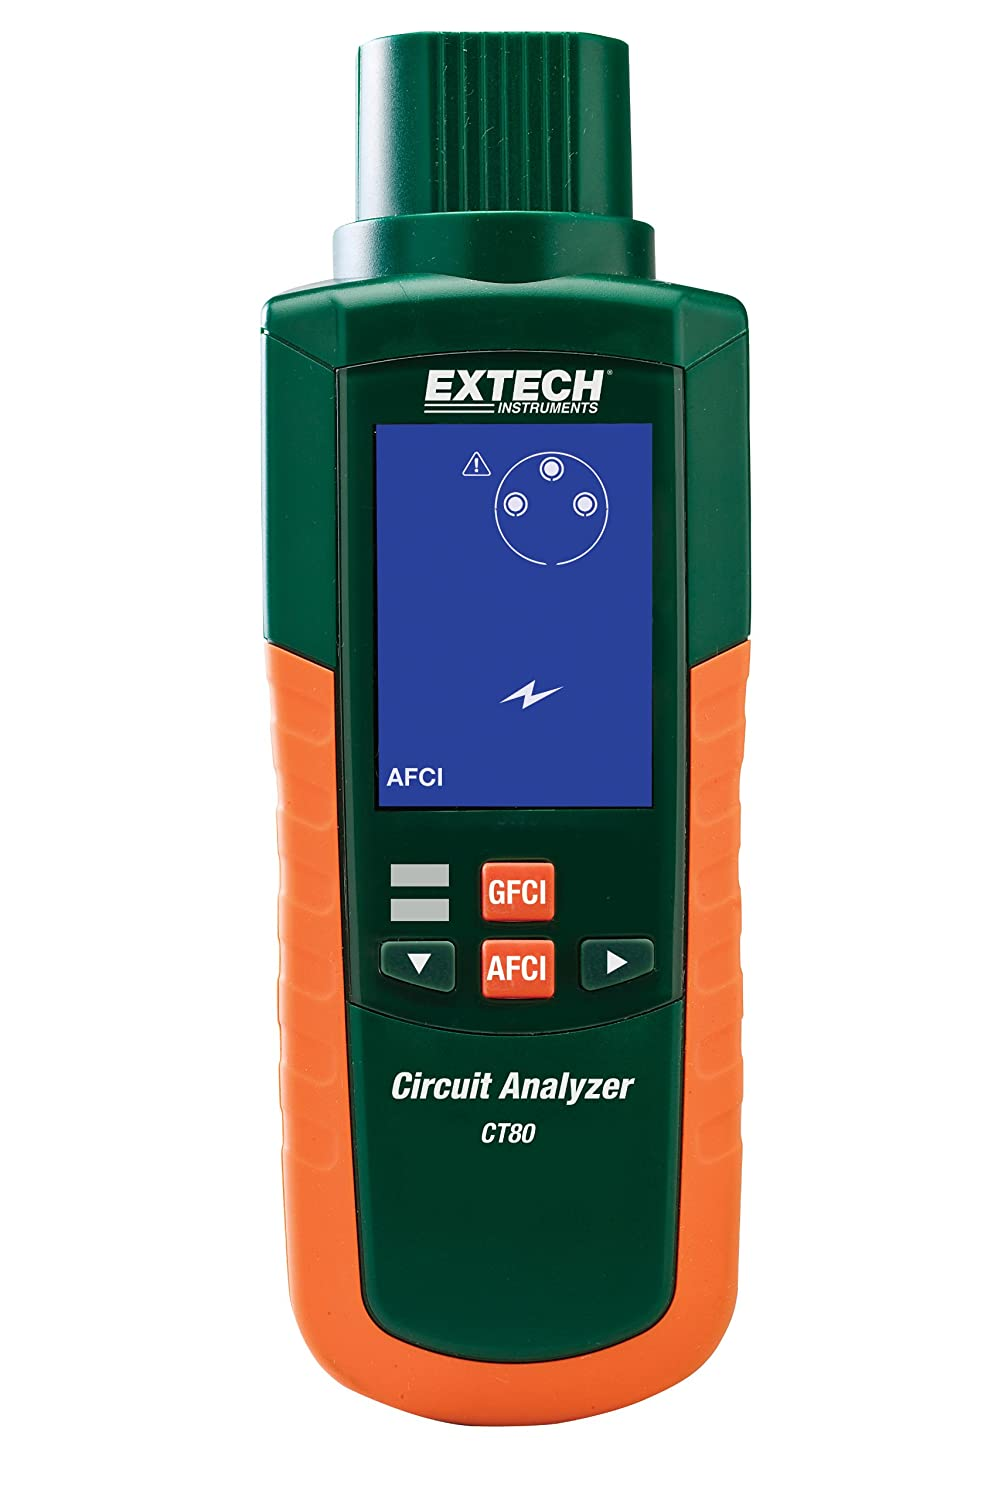 Extech Ct80 Ac Circuit Load Tester With Gfci Afci Centers Fuses Breakers Ground Fault Interrupters